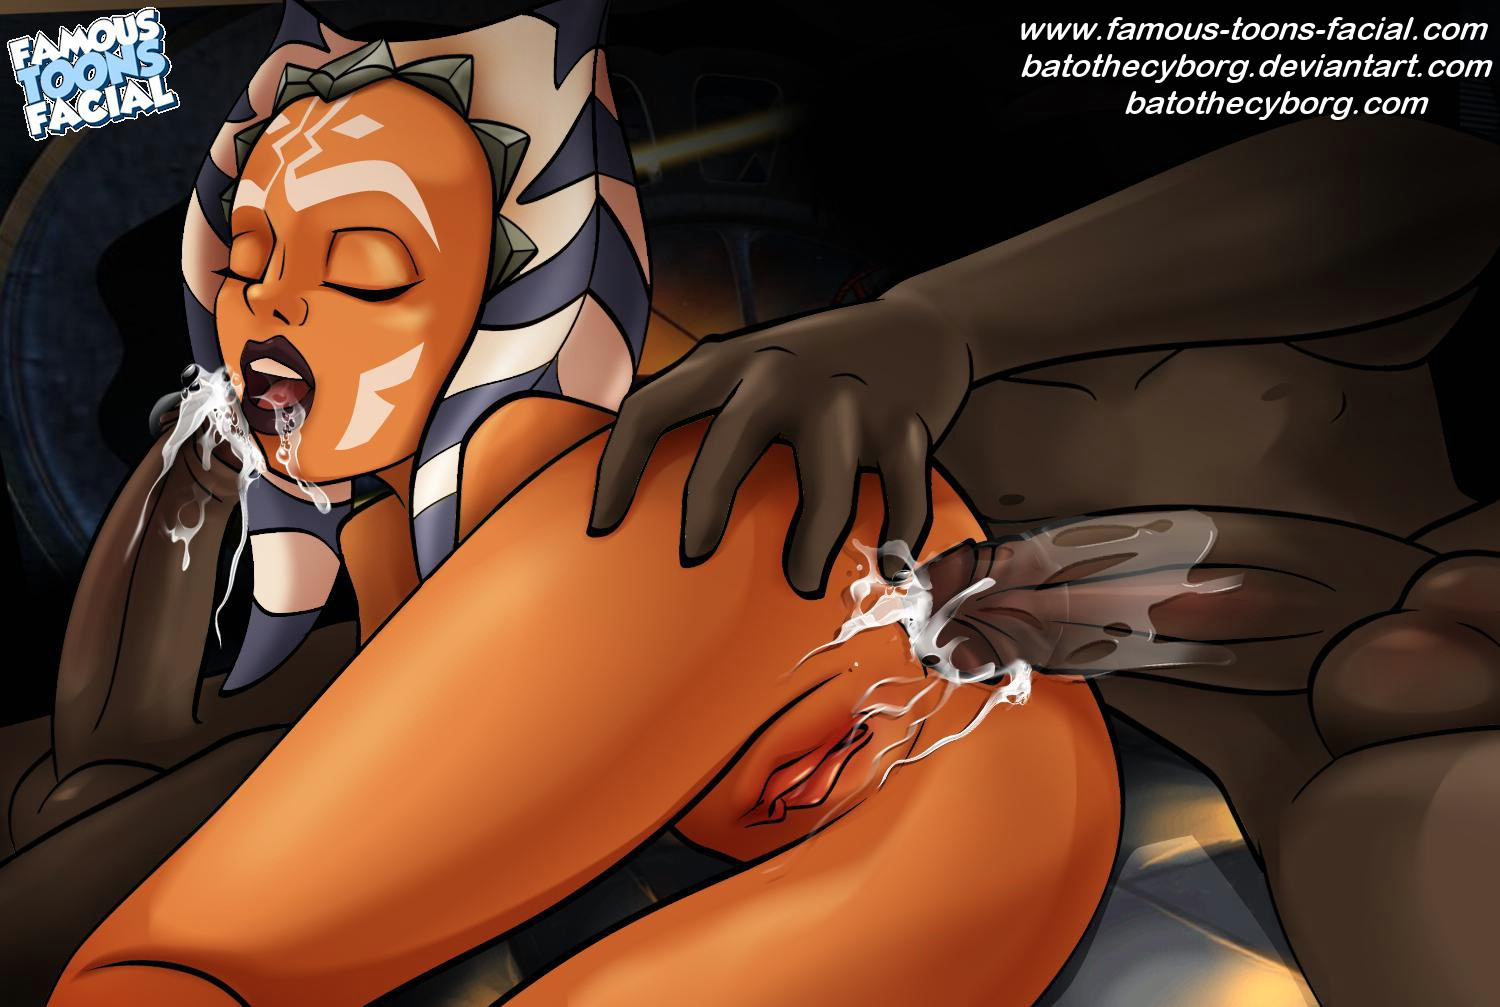 Hot sexy ahsoka hardcore fetish females